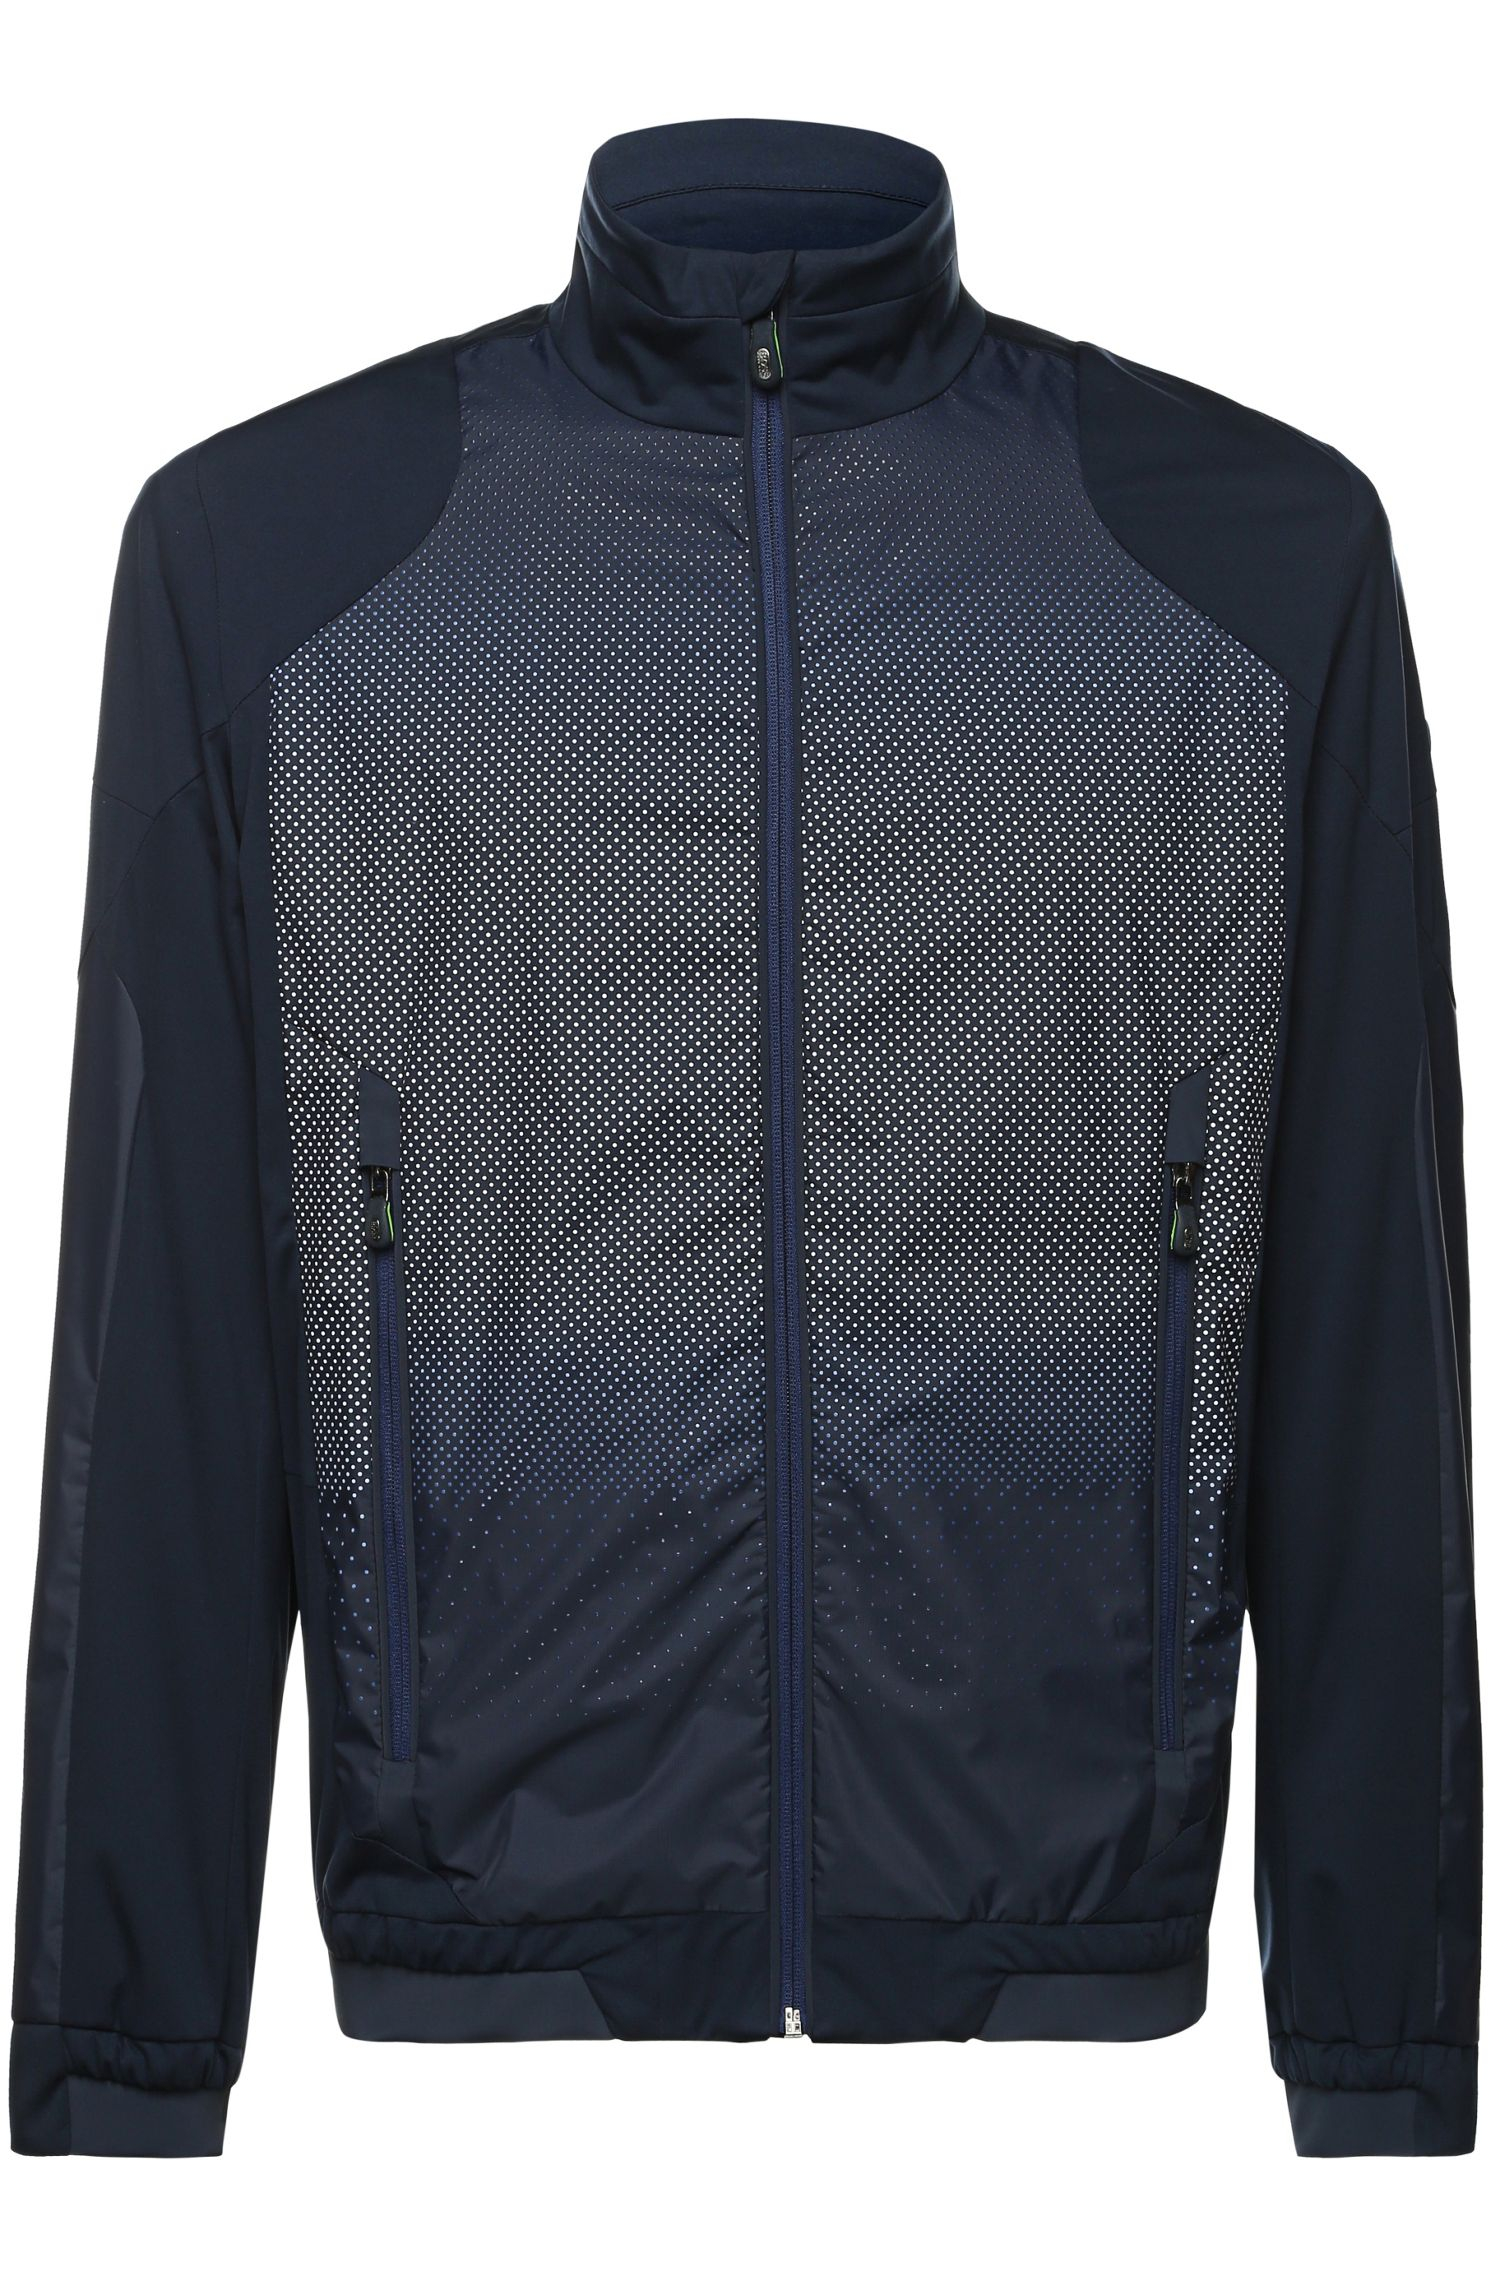 'Jossato' | Nylon Blend 4-Way Stretch Jacket